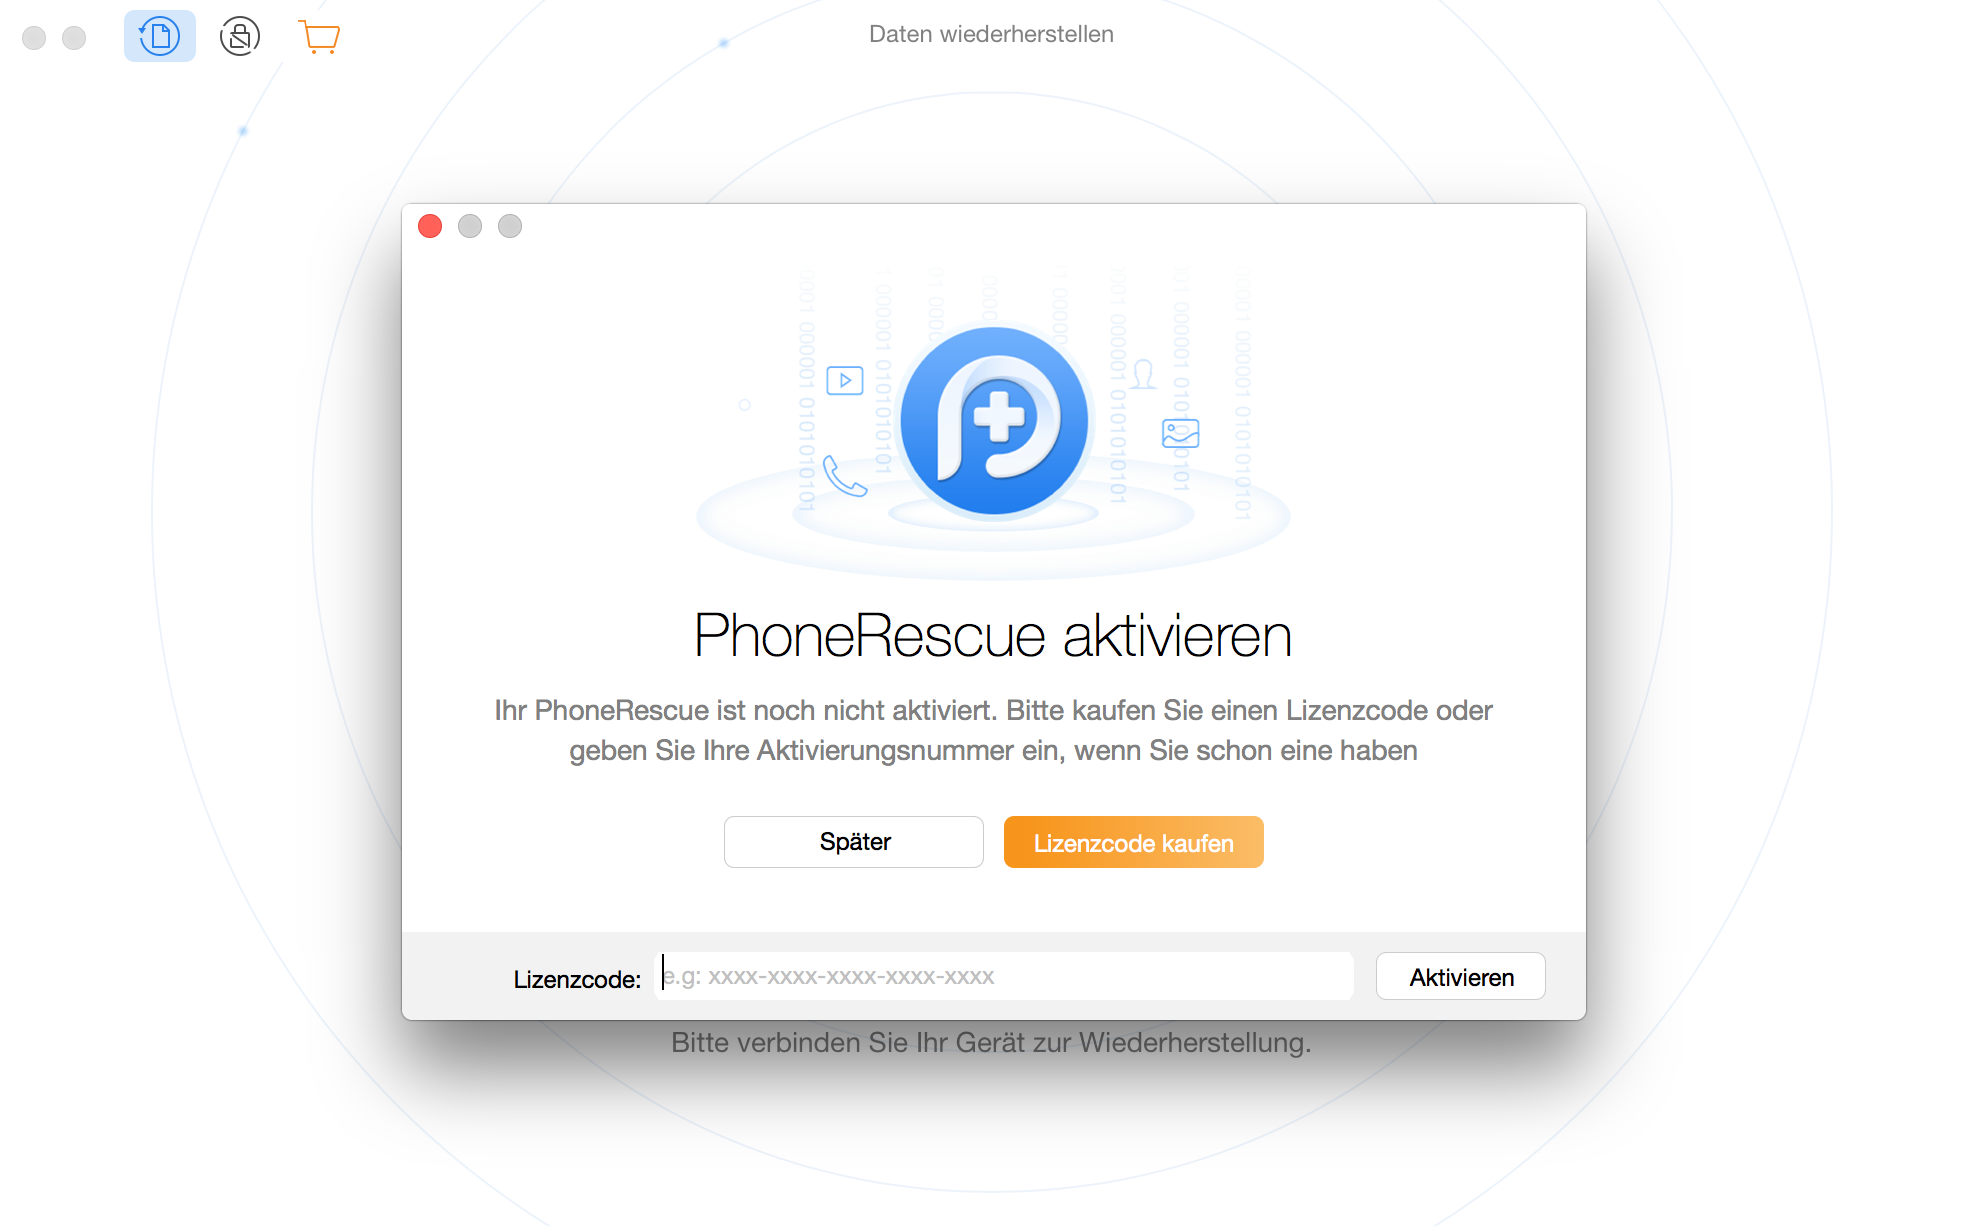 PhoneRescue für Google registrieren